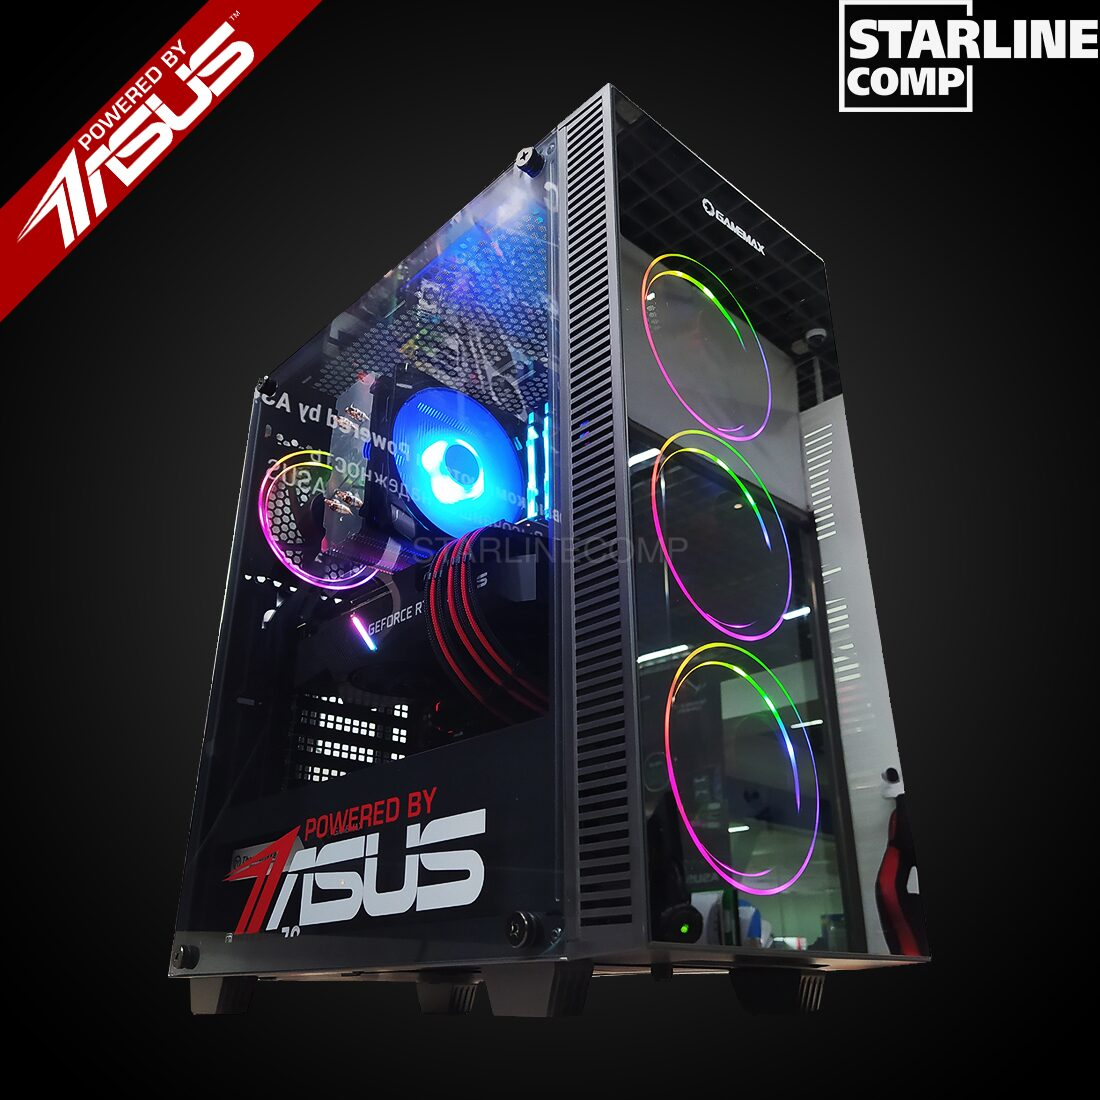 НОВИНКА POWERED BY ASUS!!! Intel Core i5-10600, 16Gb RAM, RTX 3070 8Gb,SSD 480 gb,HDD 1000gb